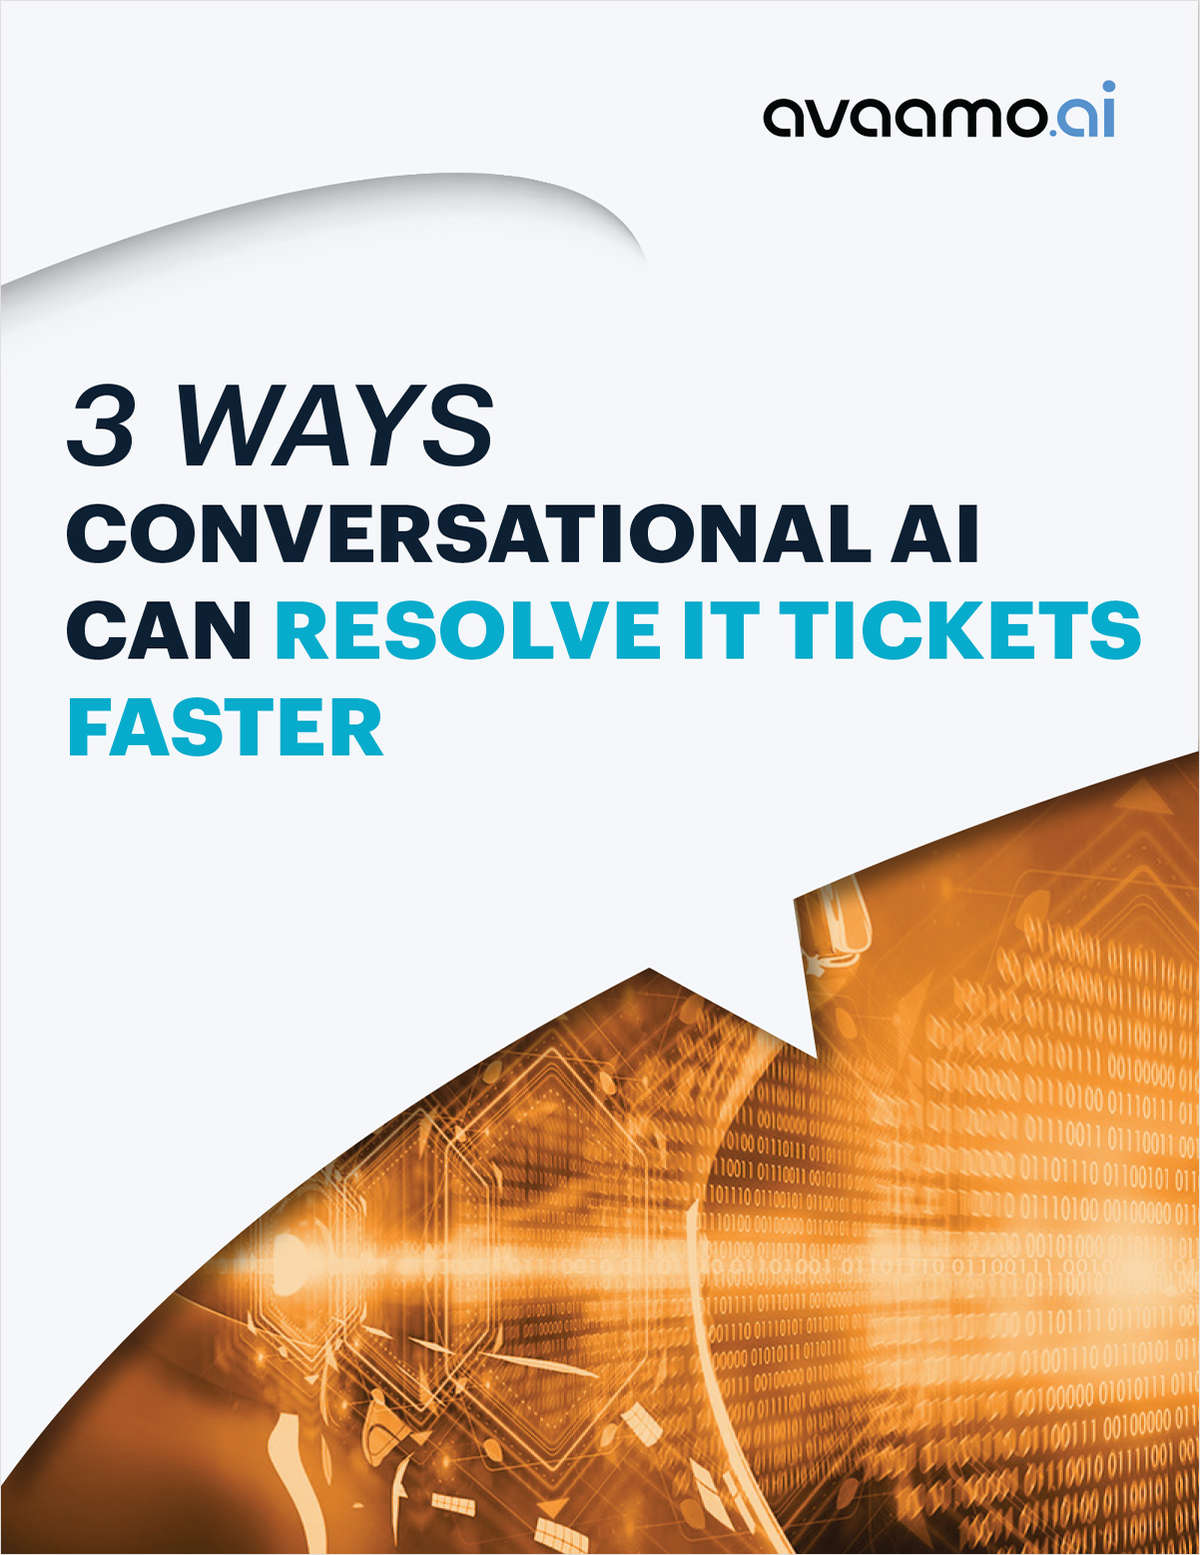 3 Ways Conversational AI Can Resolve Tickets Faster